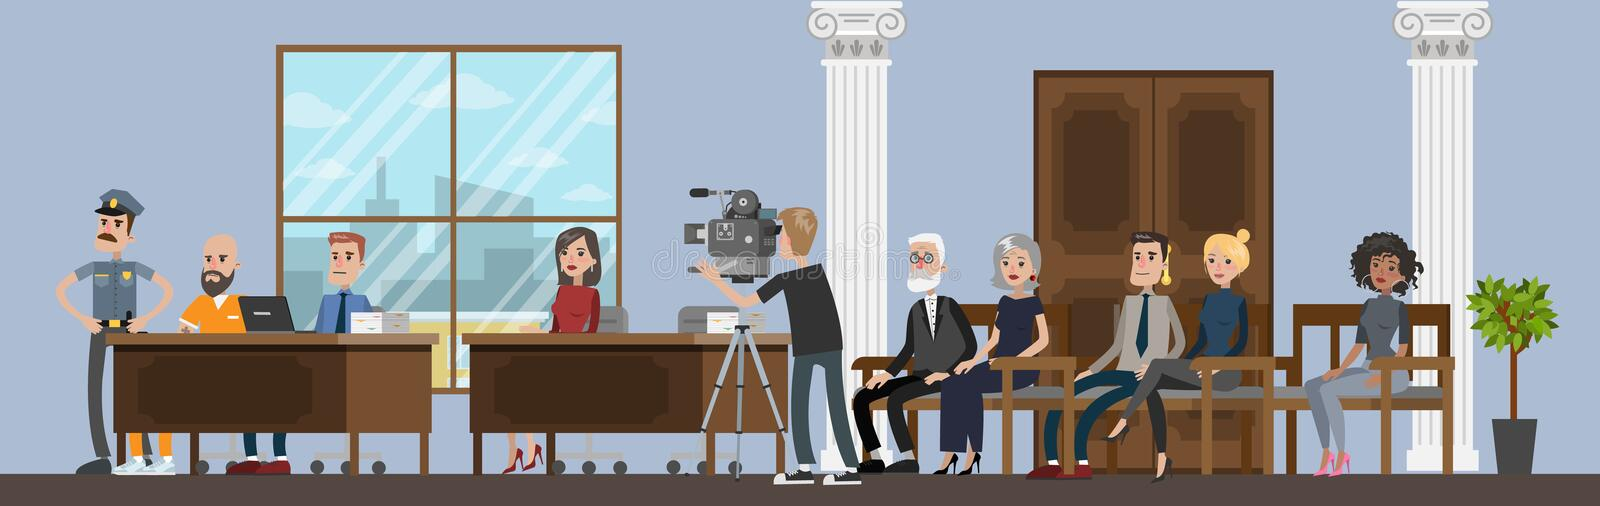 Court building interior with courtroom. Trial process. With jury and suspect. Police officer standing at prisoner. Idea of justice. Vector flat illustration vector illustration